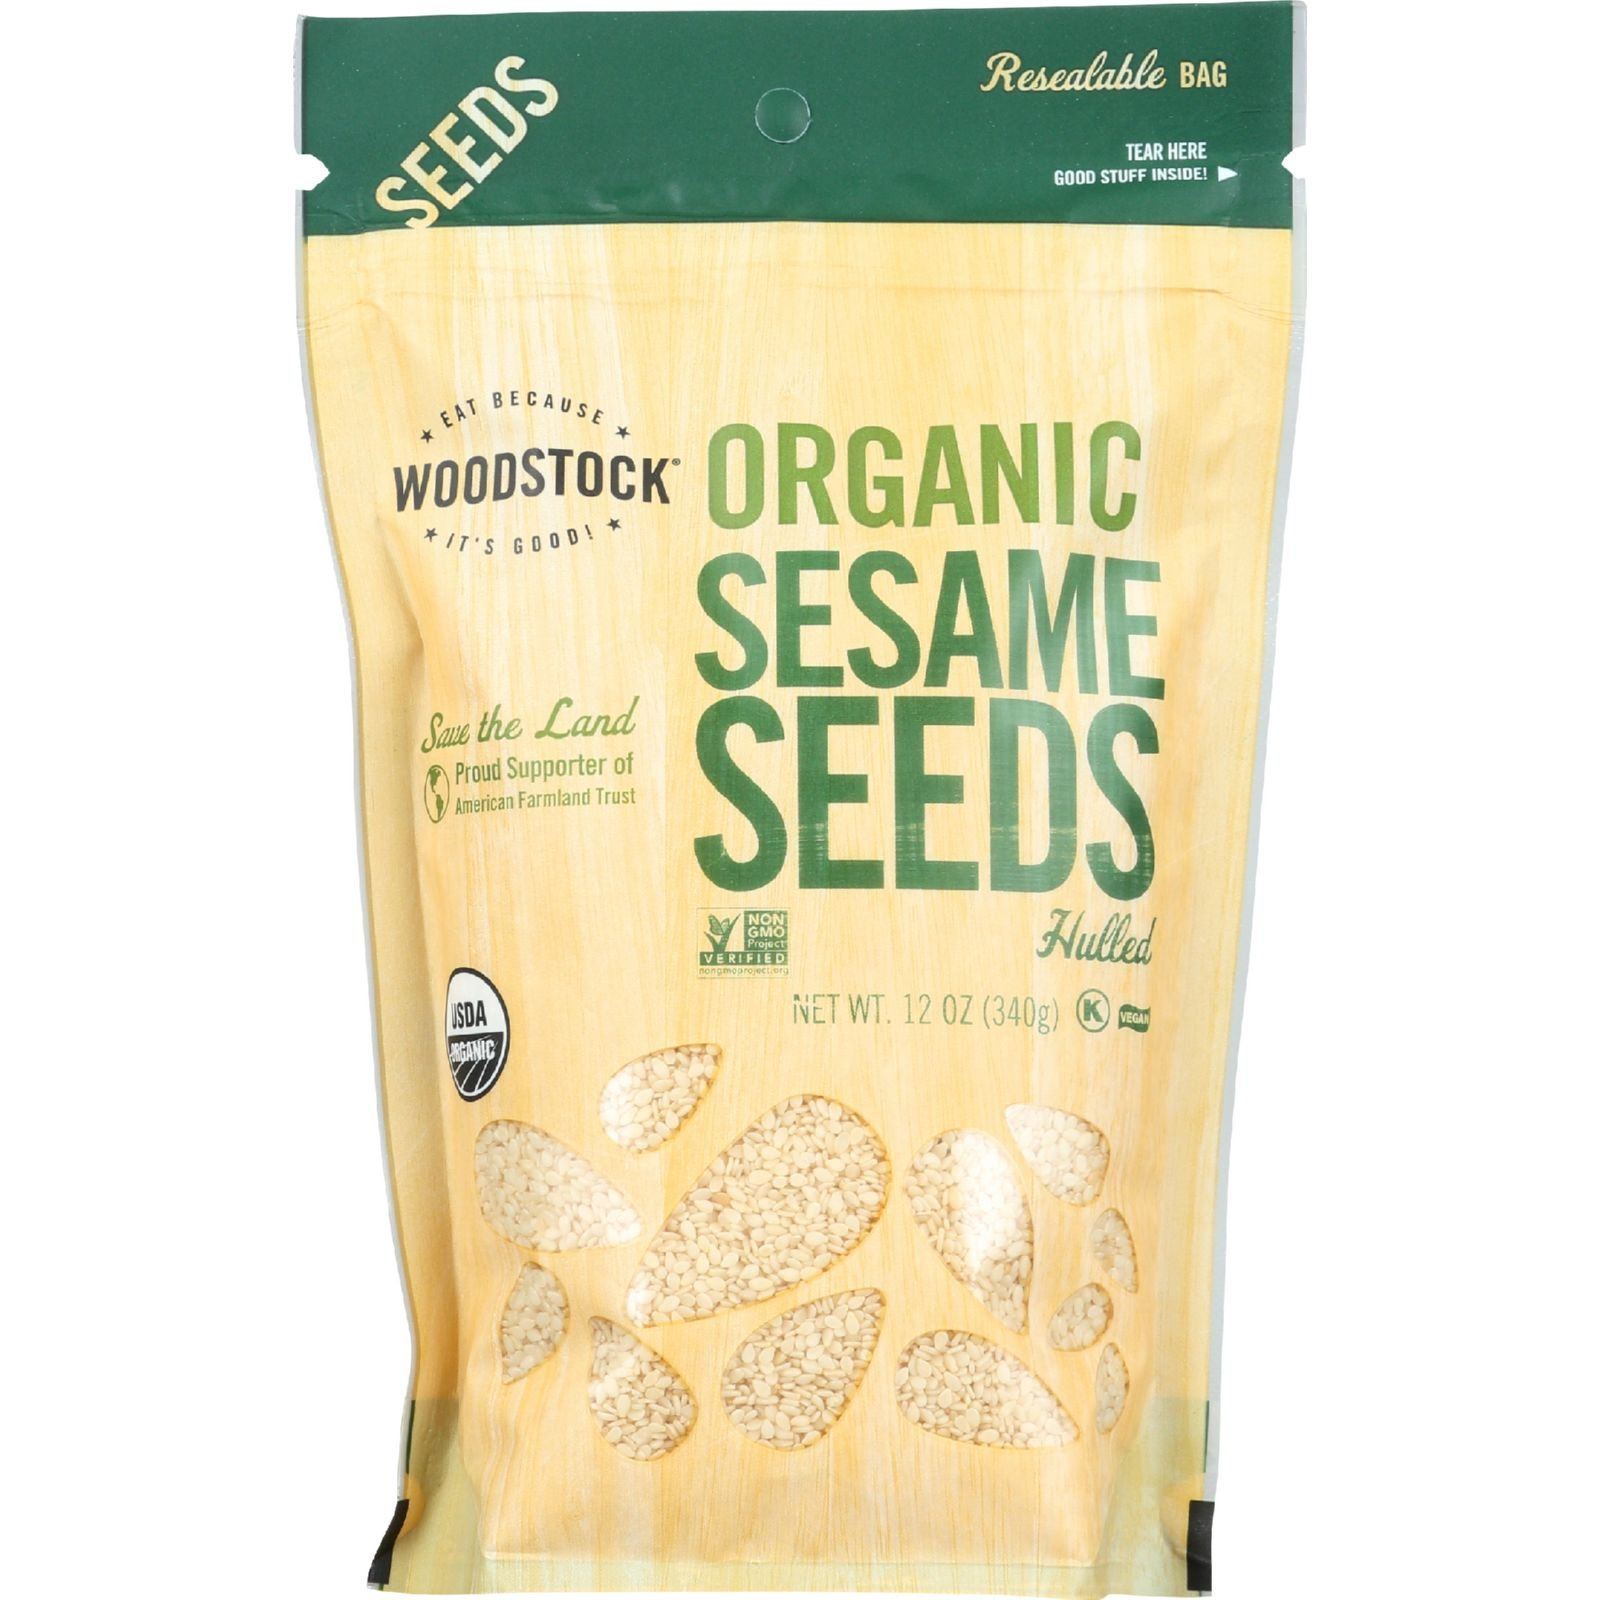 Woodstock Seeds - Organic Hulled Sesame Seeds - Raw - 12 oz - case of 8 - Vegan - Non GMO by Woodstock